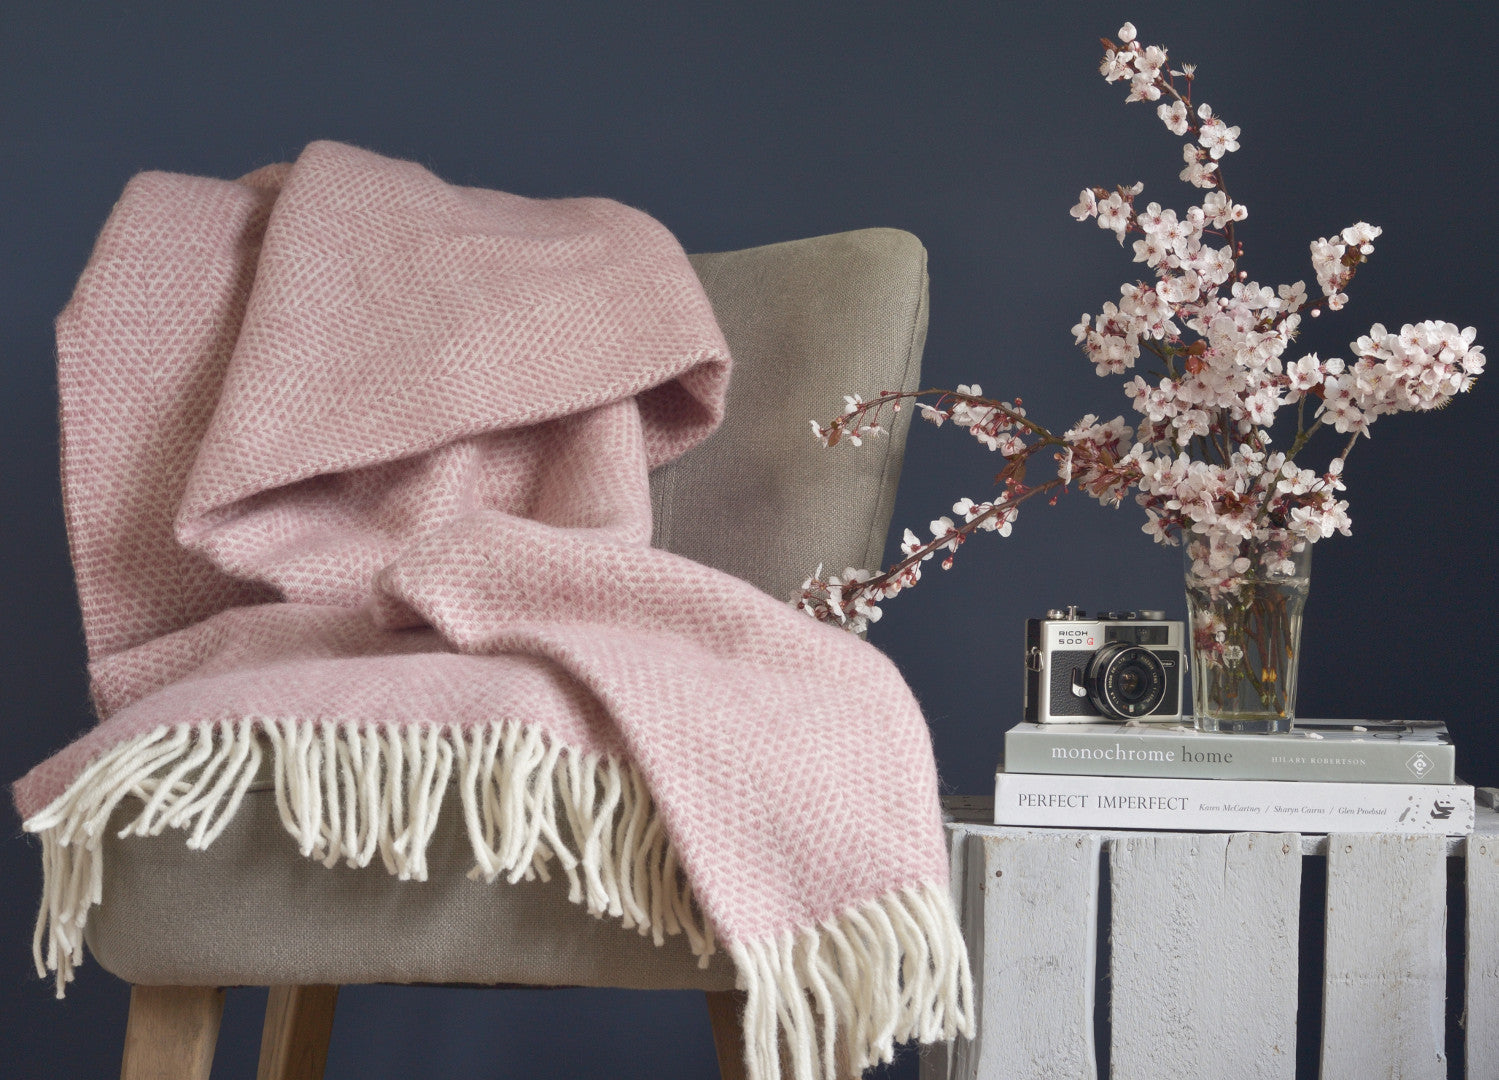 Charmant Dusky Pink Beehive Throw   Buy At The British Blanket Company